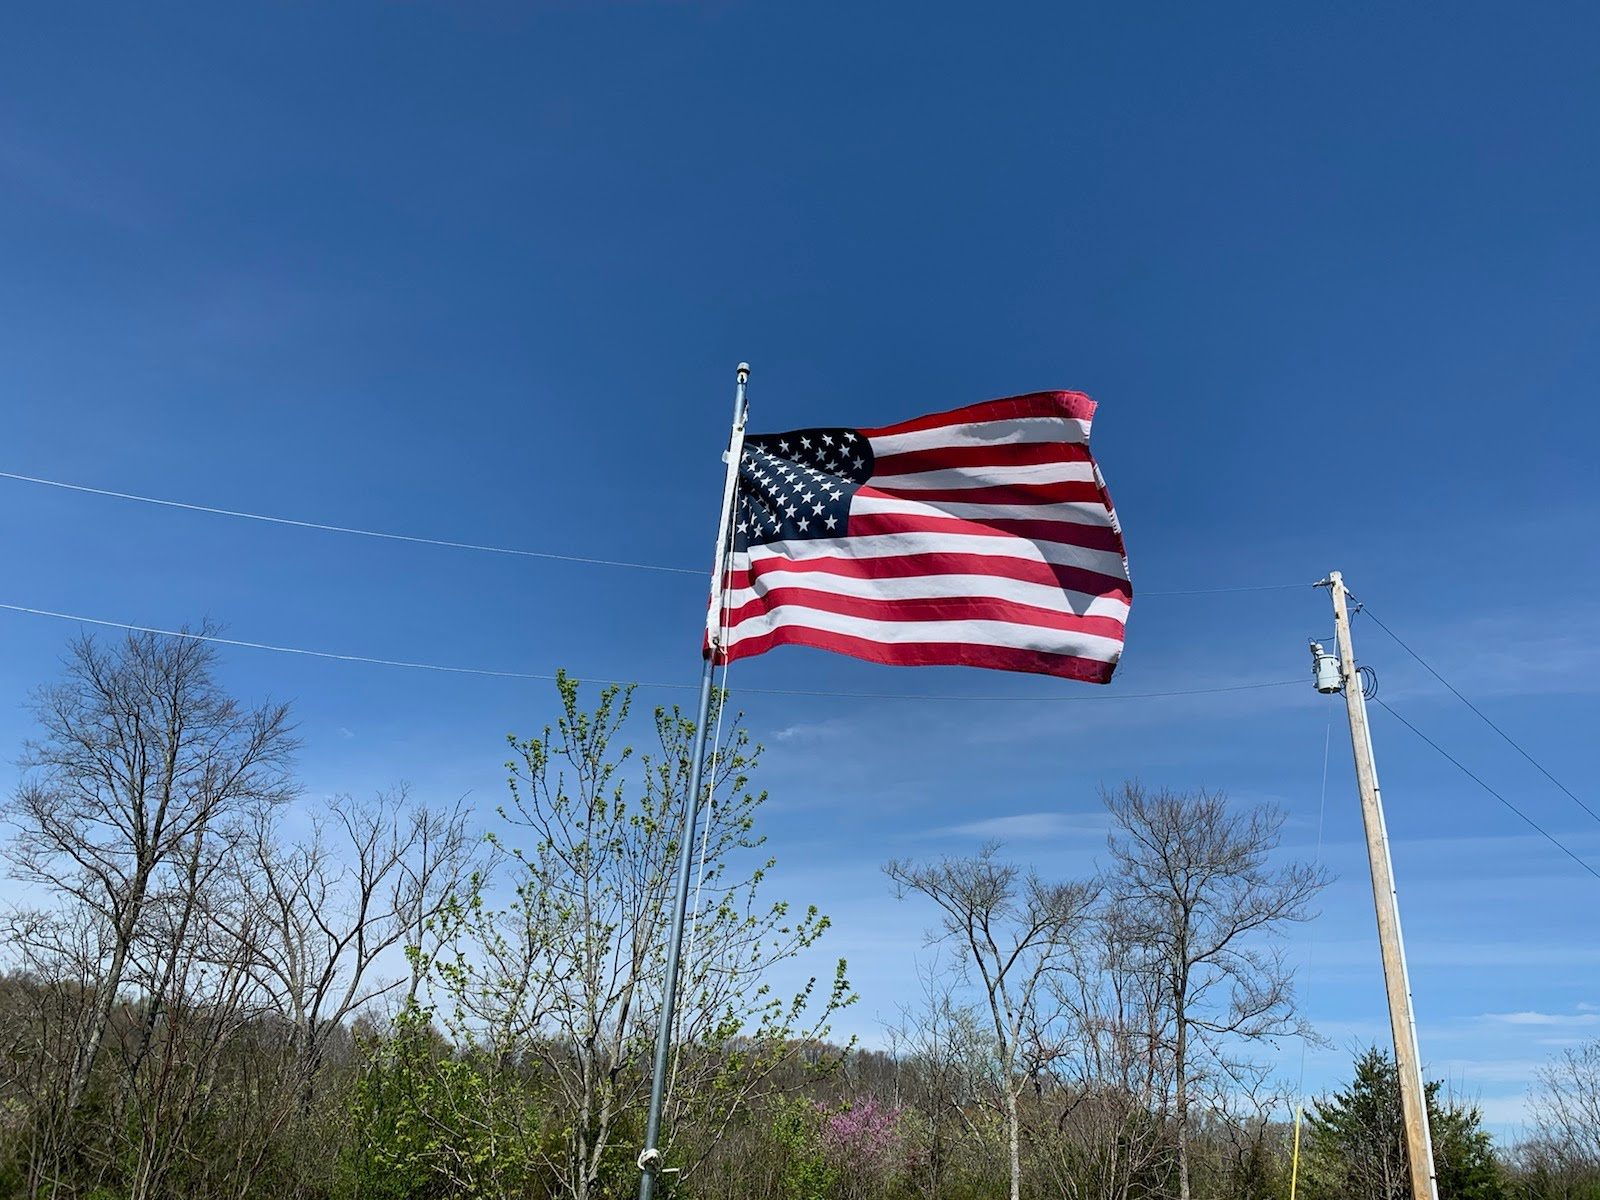 American flag flying in the blue sky